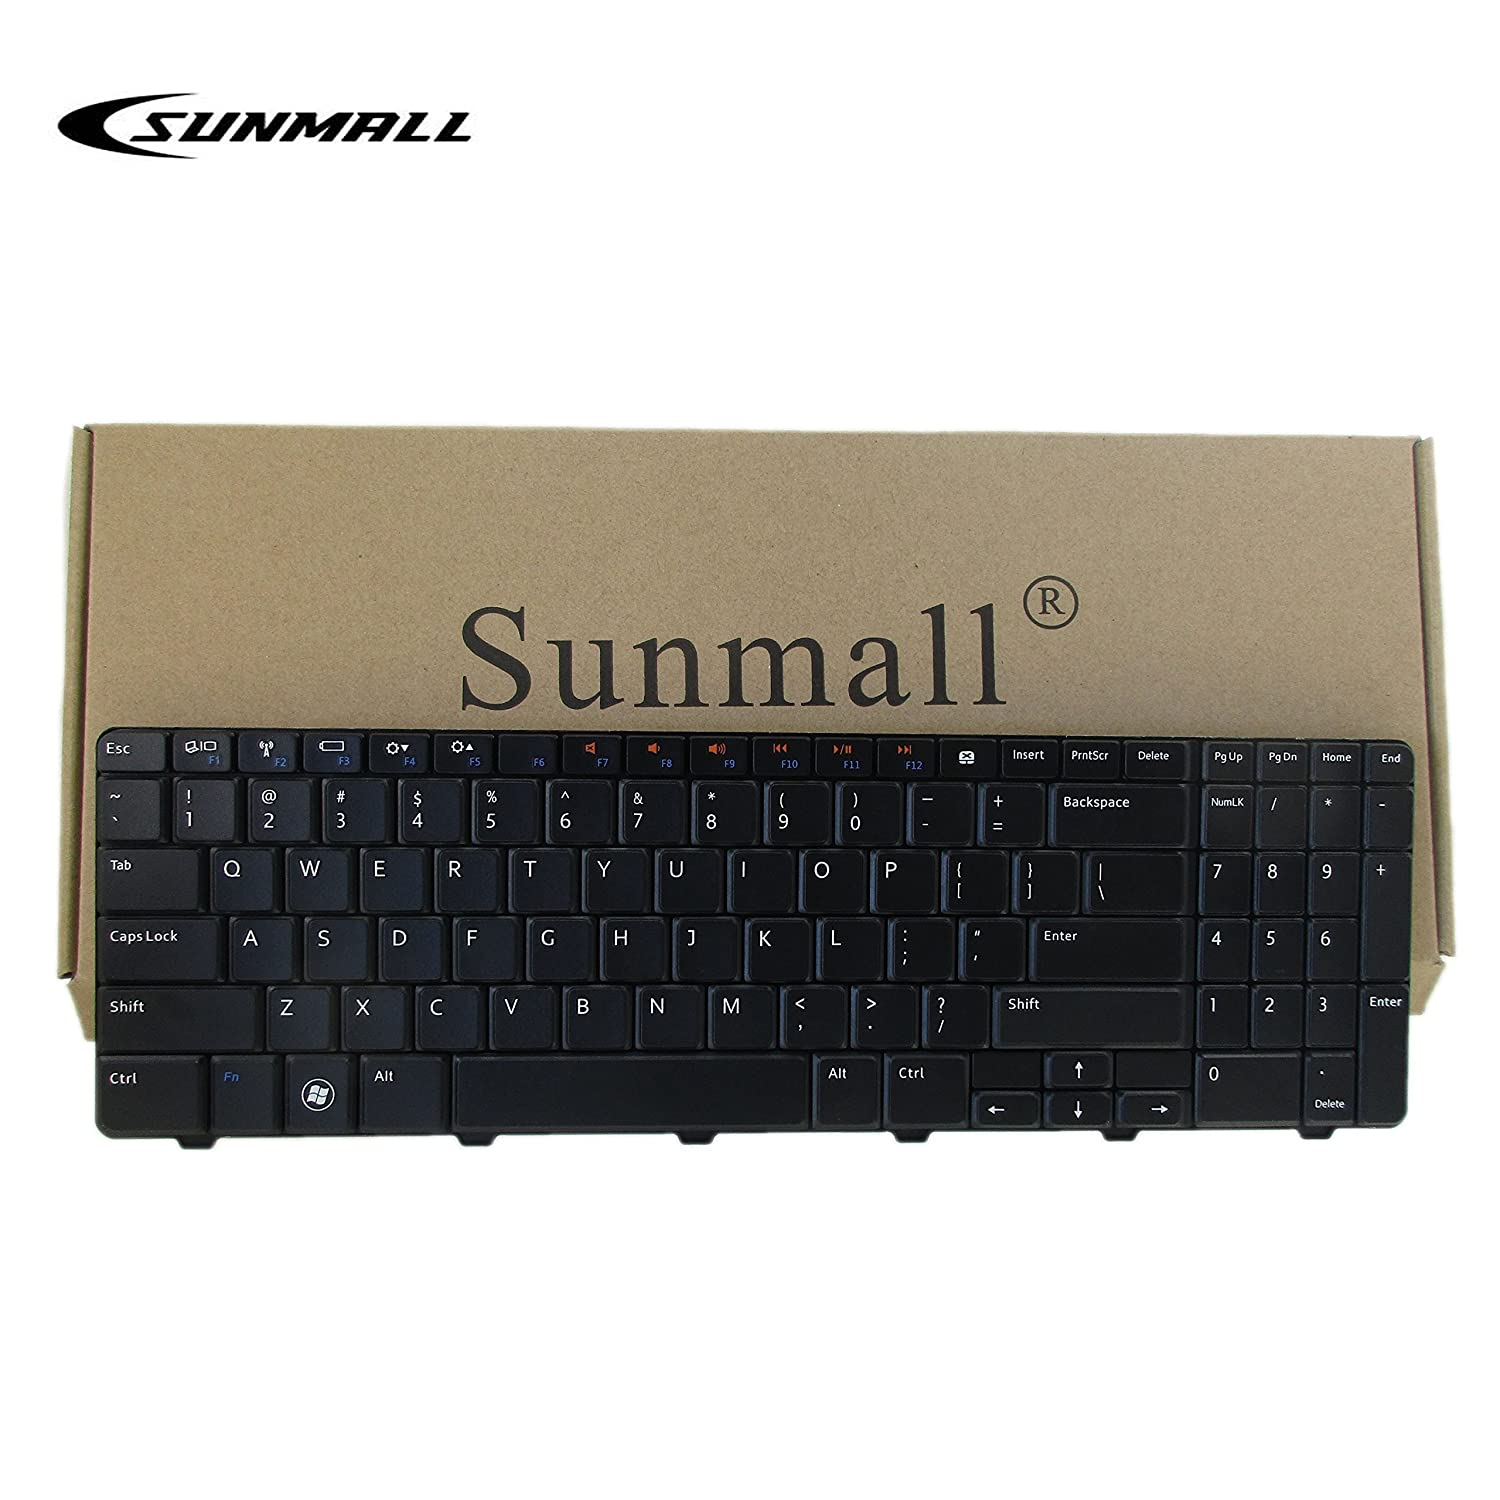 SUNMALL New Laptop Keyboard for Dell Inspiron 15R 5010 M5010 M501R N5010 09GT99 NSK-DRASW 96DJT 096DJT NSK-DRASW series Black US Layout Keyboardseller